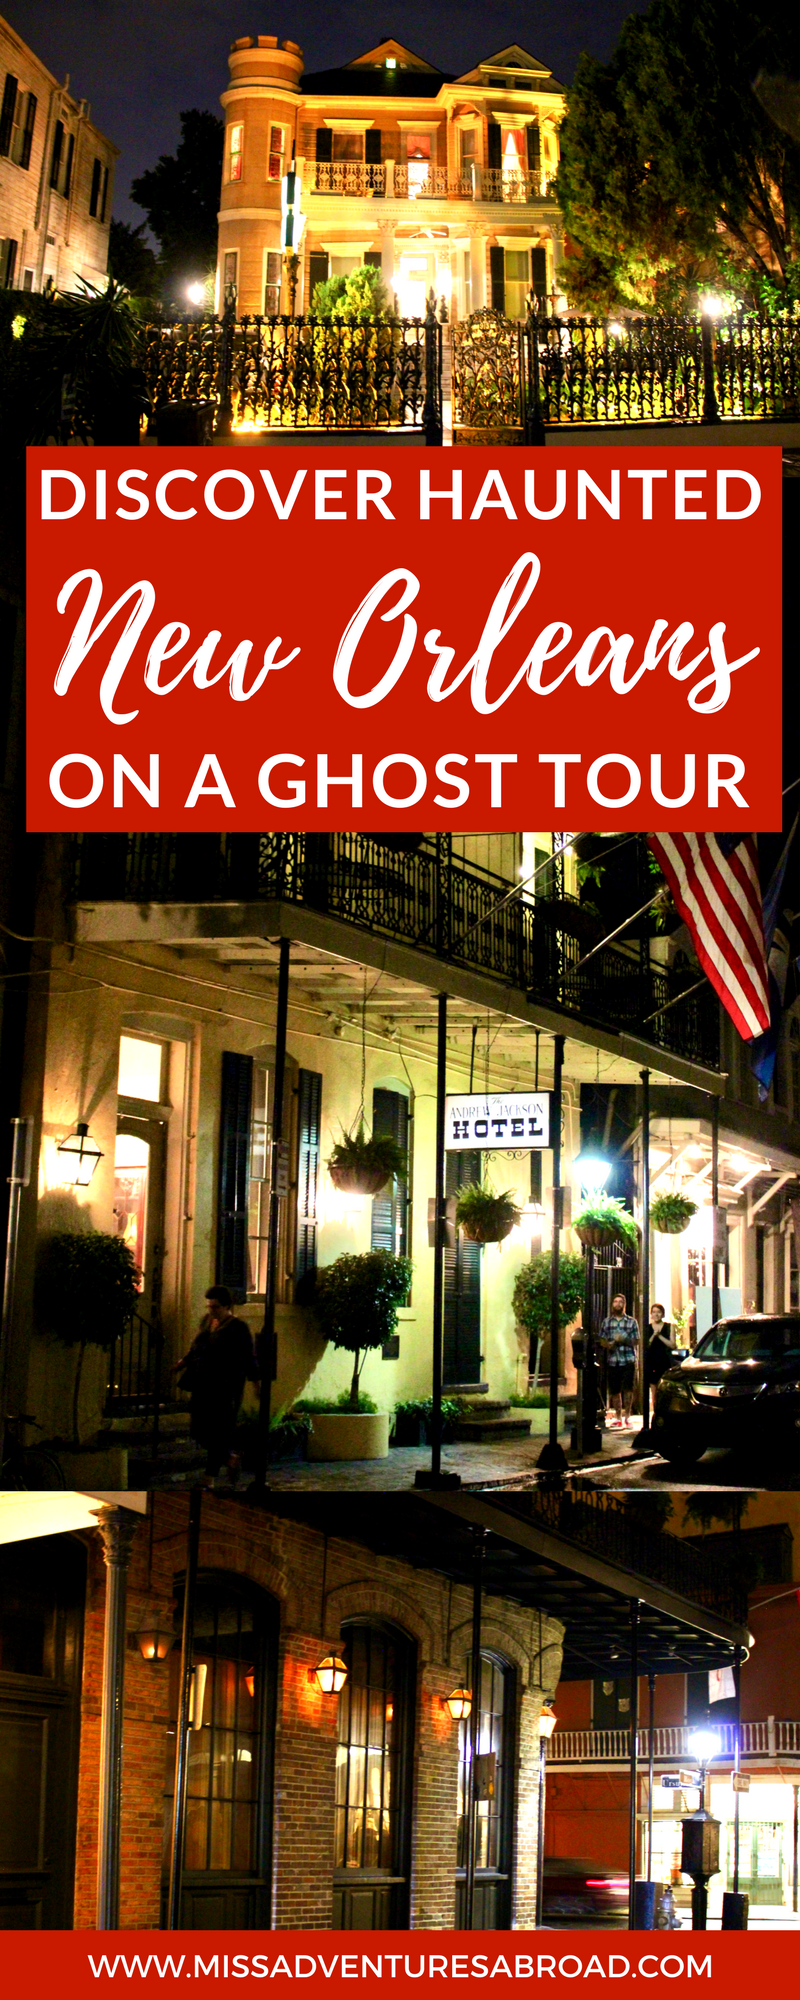 Discovering Haunted New Orleans On A Ghost Tour 183 New